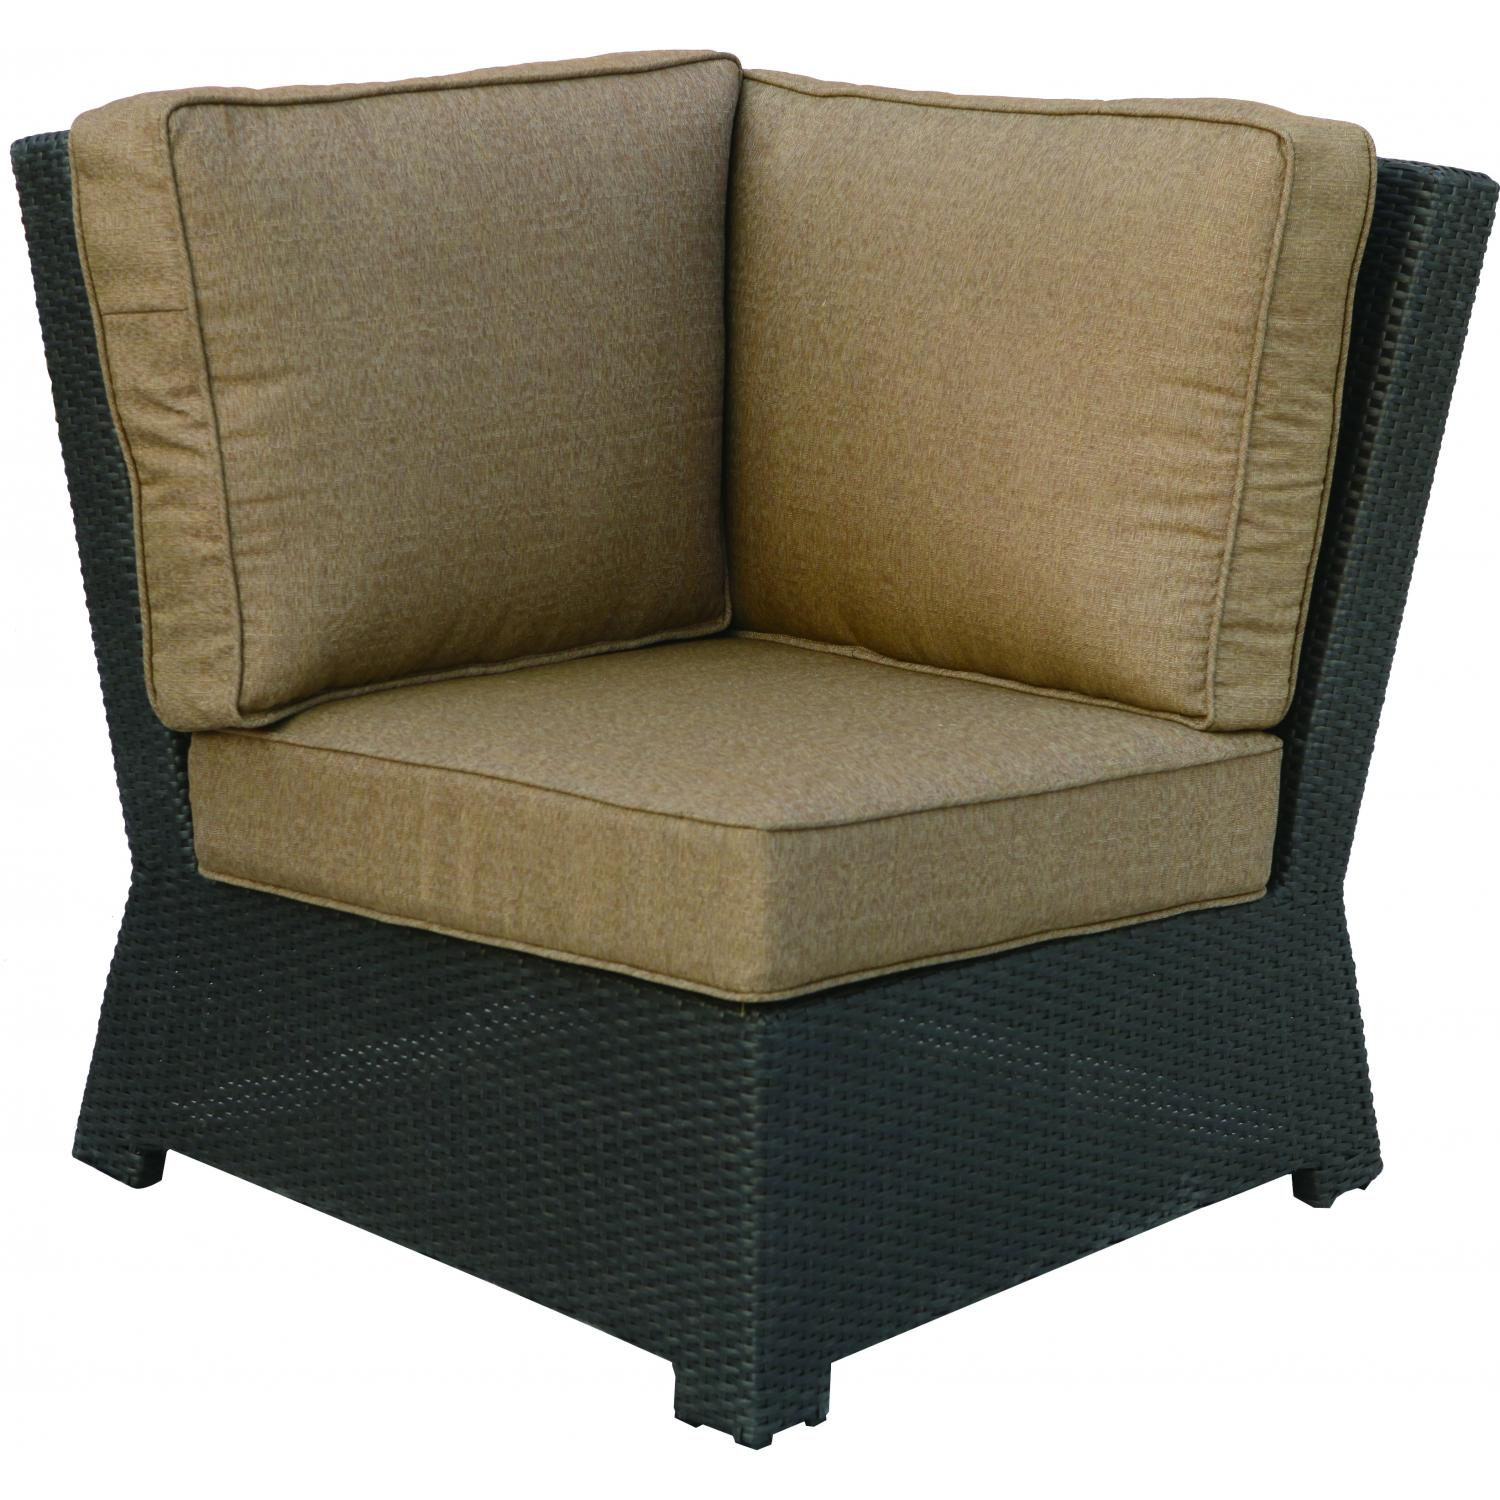 Image of: Wicker Patio Chair Design